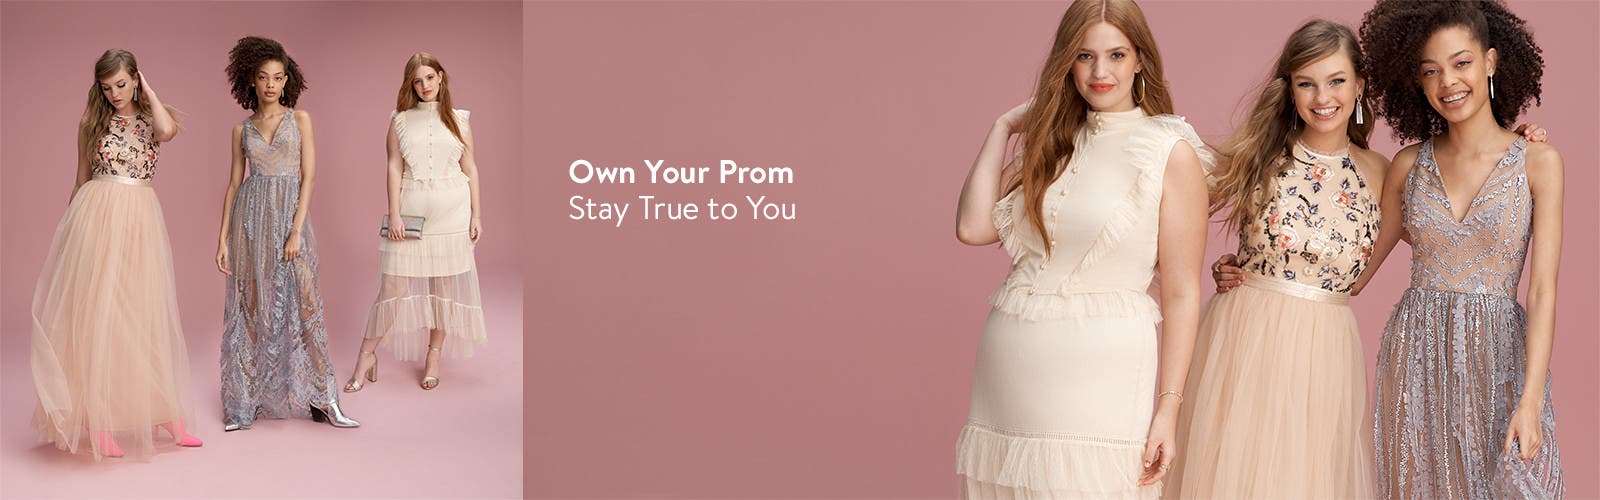 Shop our prom guide.